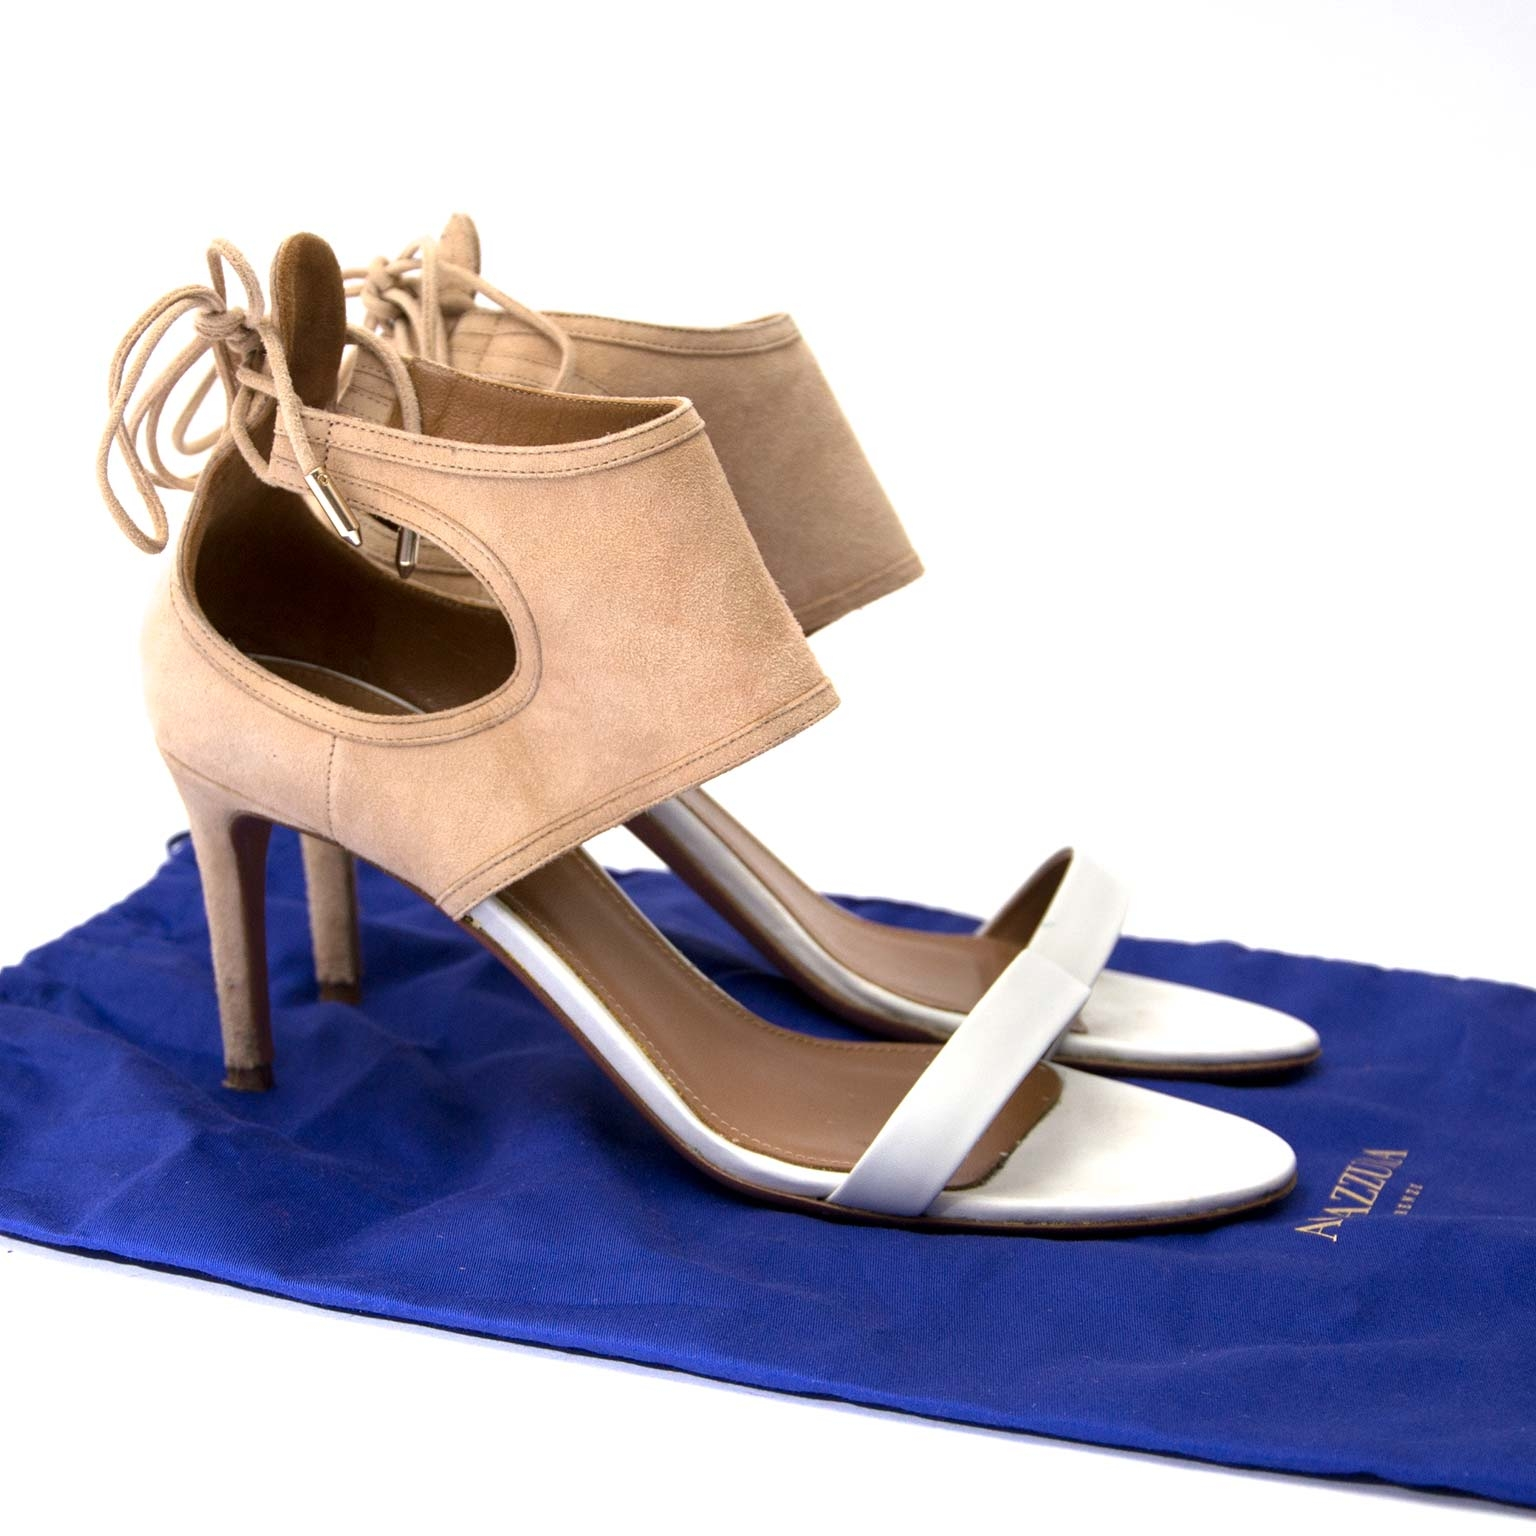 Aquazzura White & Beige Suede Heel Sandals - Size 39 Buy authentic designer Aquazzura secondhand shoes at Labellov at the best price. Safe and secure shopping. Koop tweedehands authentieke Aquazzura schoenen bij designer webwinkel labellov.